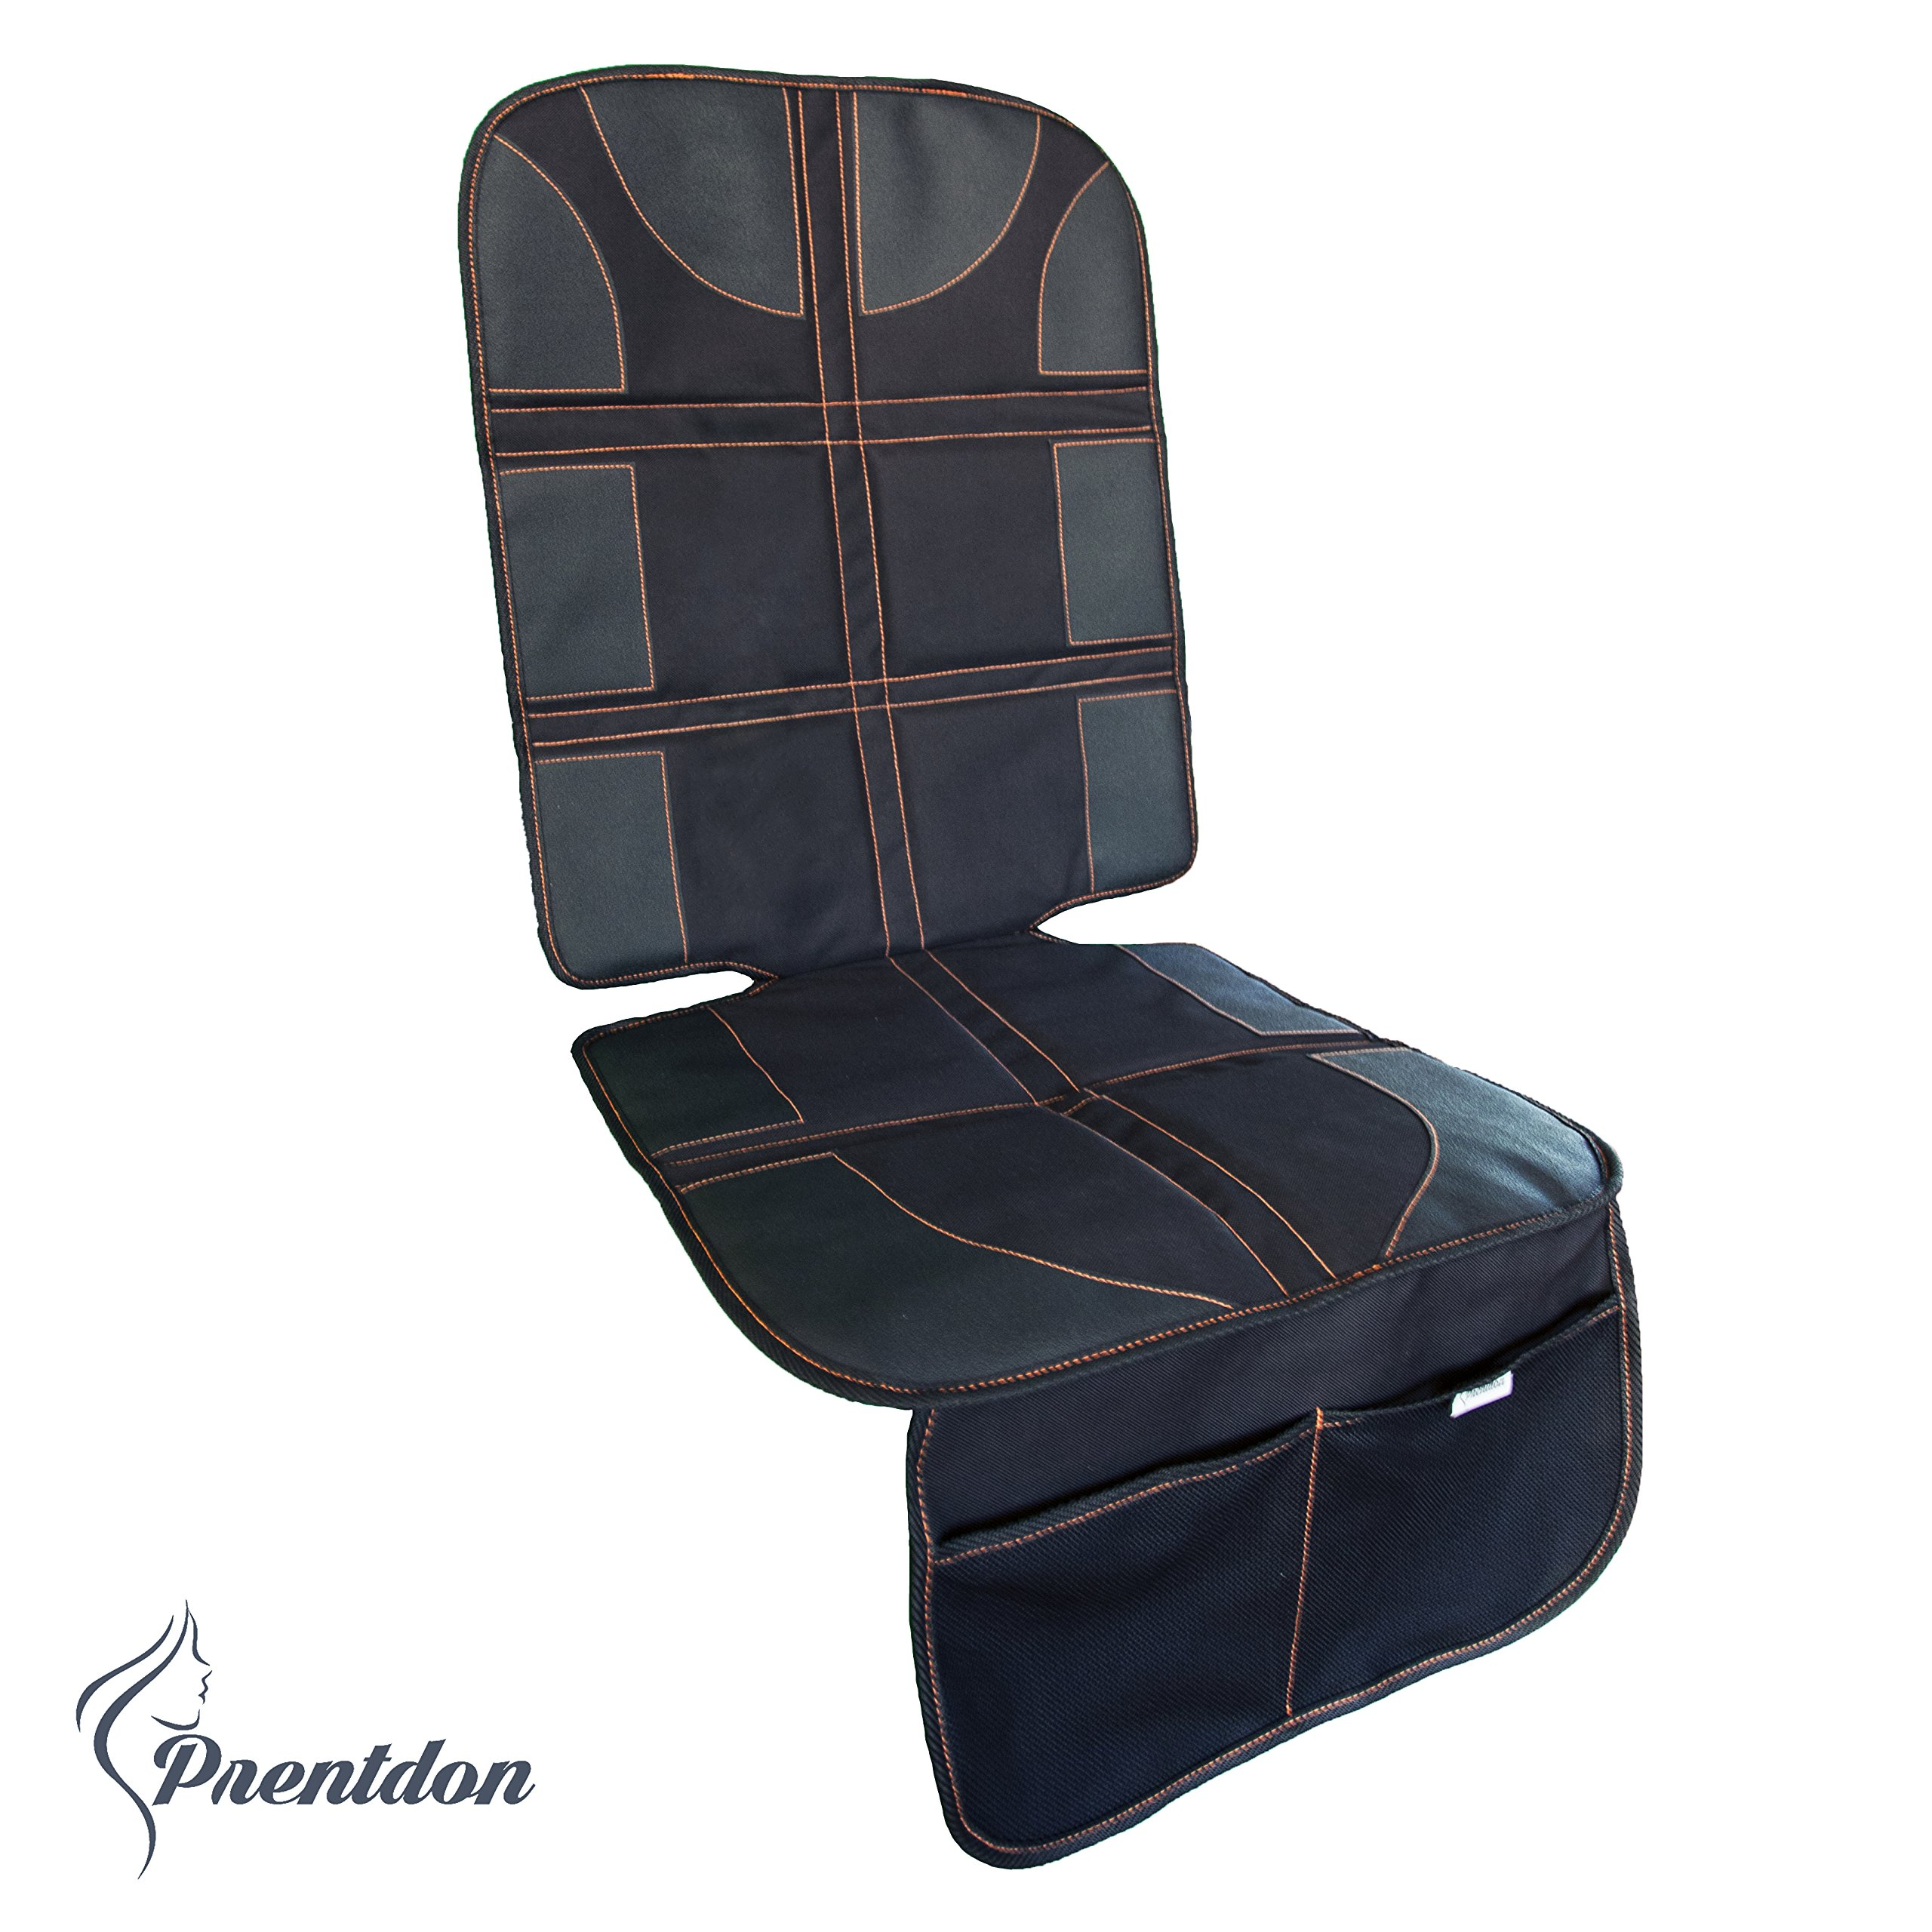 Car Seat Protector with PVC Leather Reinforced Corners & 2 Large Pockets for Handy Storage and Thickest Padding - Featuring Durable, Waterproof 600D Fabric Best Gift Idea